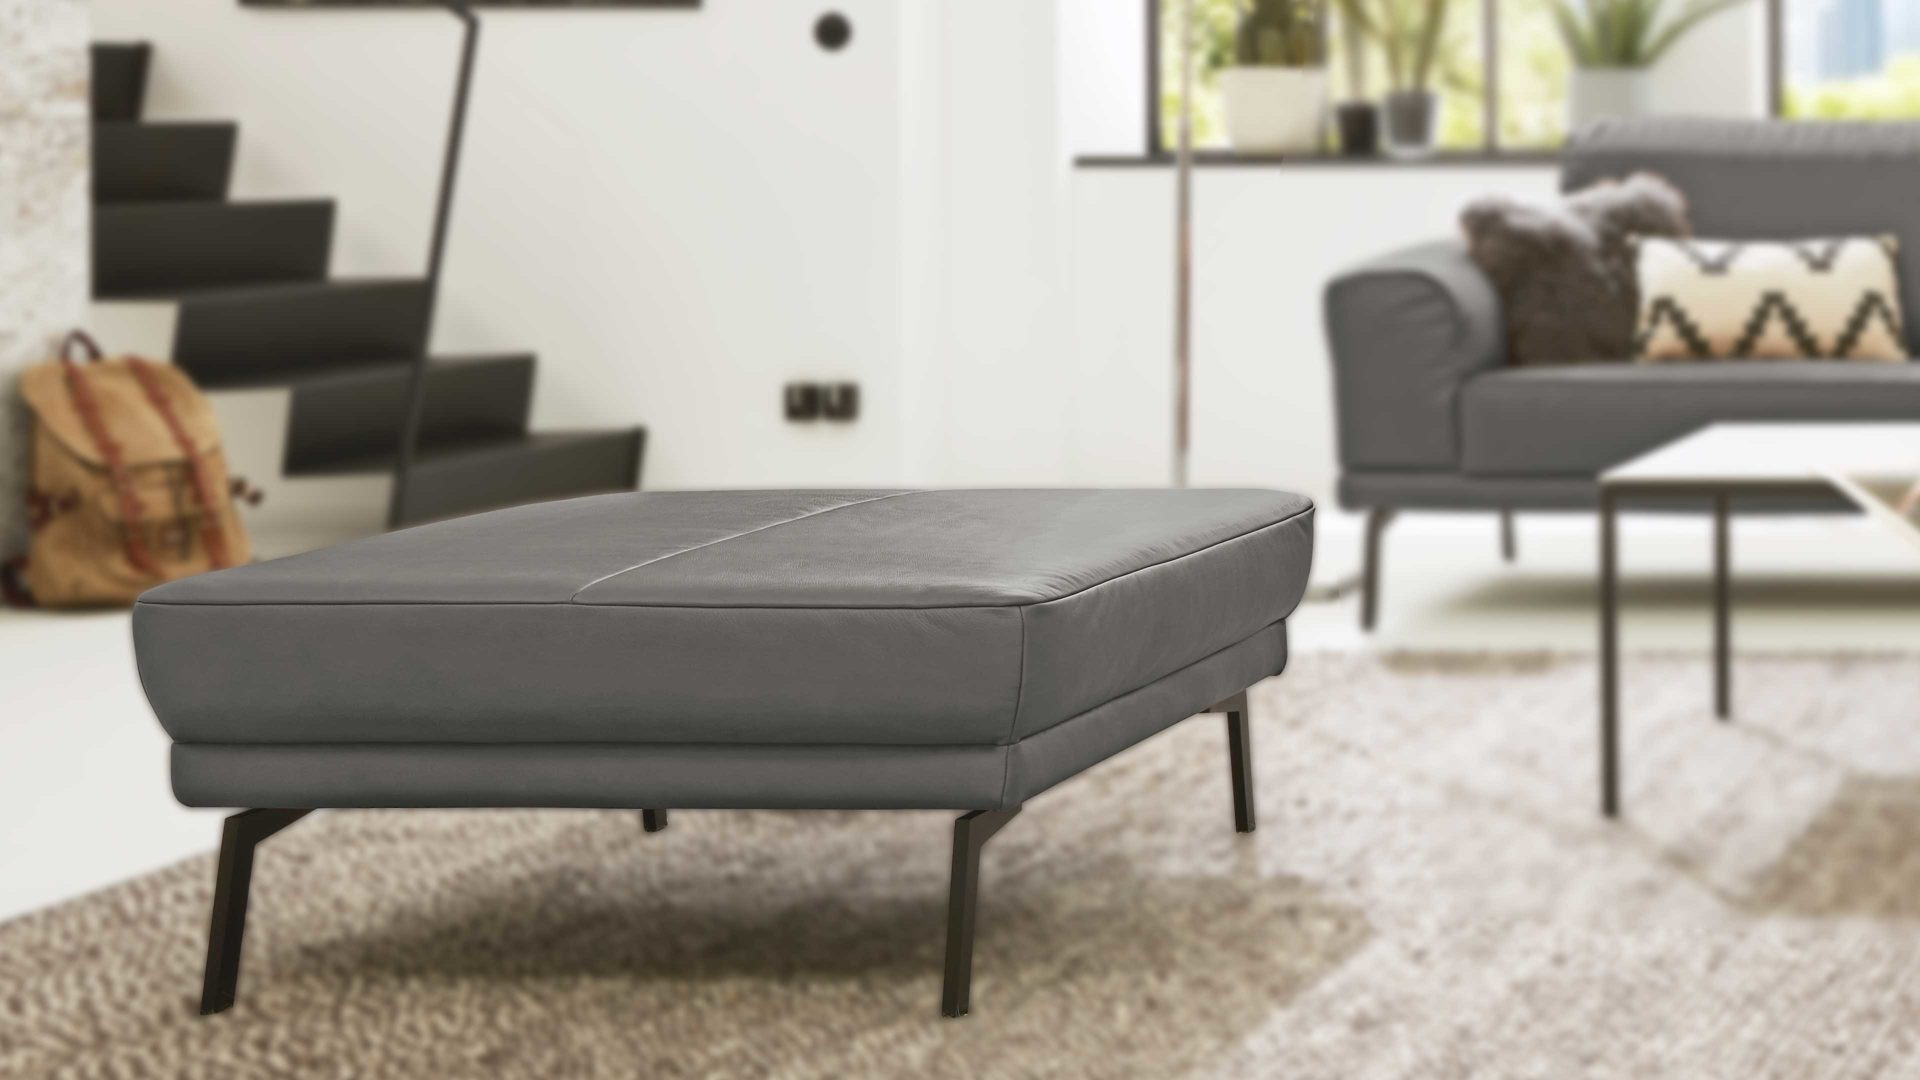 Polsterhocker Interliving aus Stoff in Grau Interliving Sofa Serie 4102 – Hocker fangofarbenes Leder Mercury & Metallfüße - ca. 91 x 91 cm